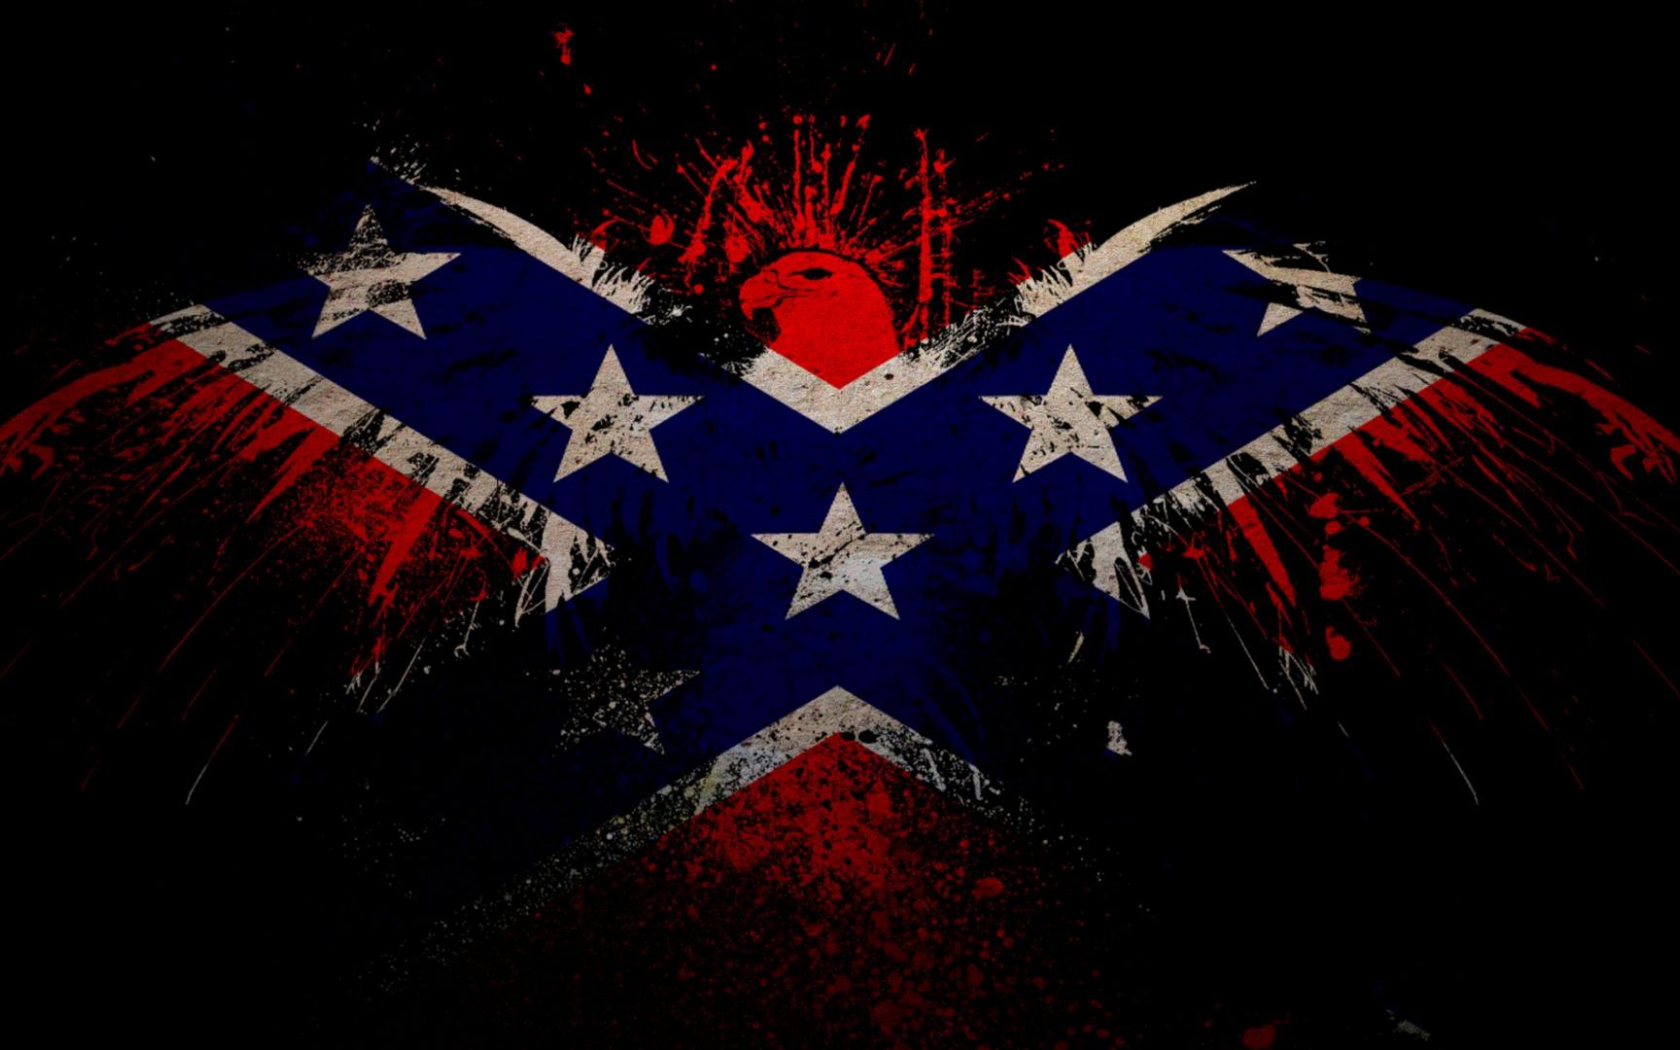 Free Download Confederate Flag Wallpapers 1920x1080 For Your Desktop Mobile Tablet Explore 96 Flags Wallpapers Flags Wallpapers Rebel Flags Wallpaper International Wallpaper